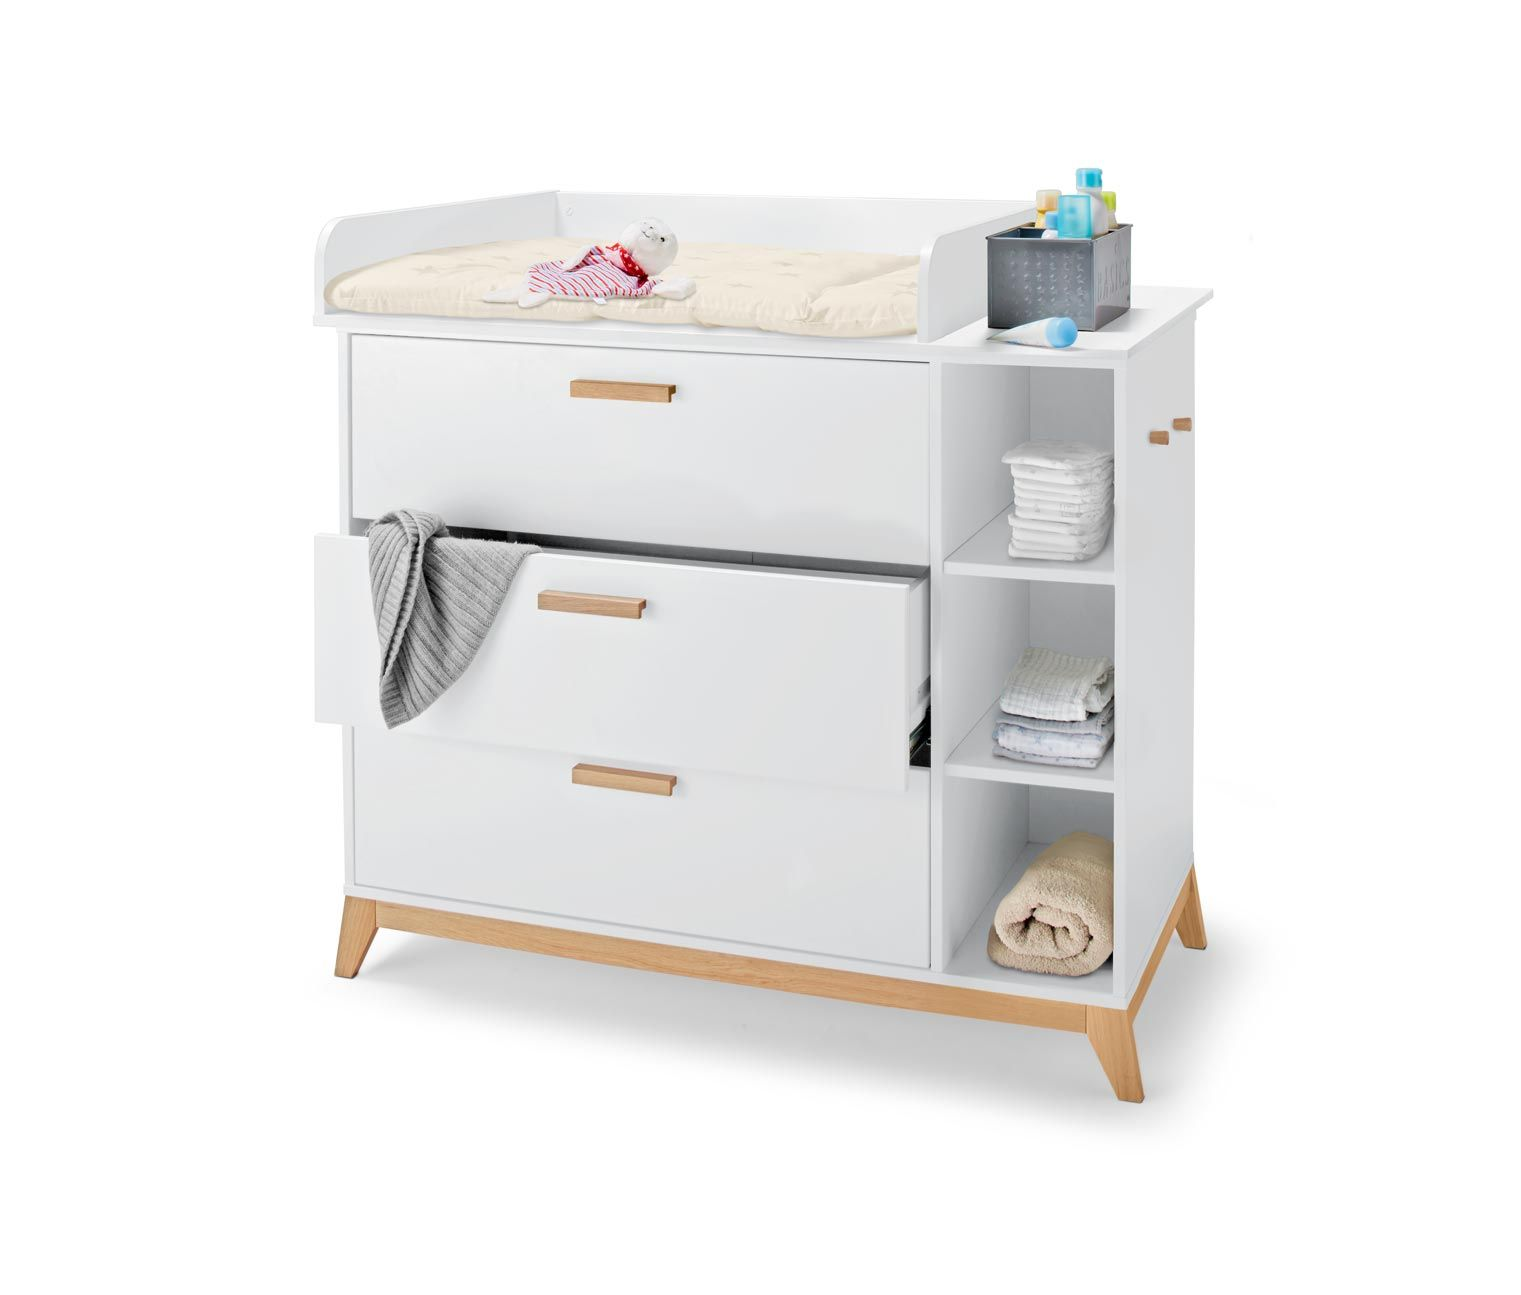 Kleiderschrank Kinderzimmer Tchibo Wickelkommode In 2019 Baby Wickelkommode Home Decor Table